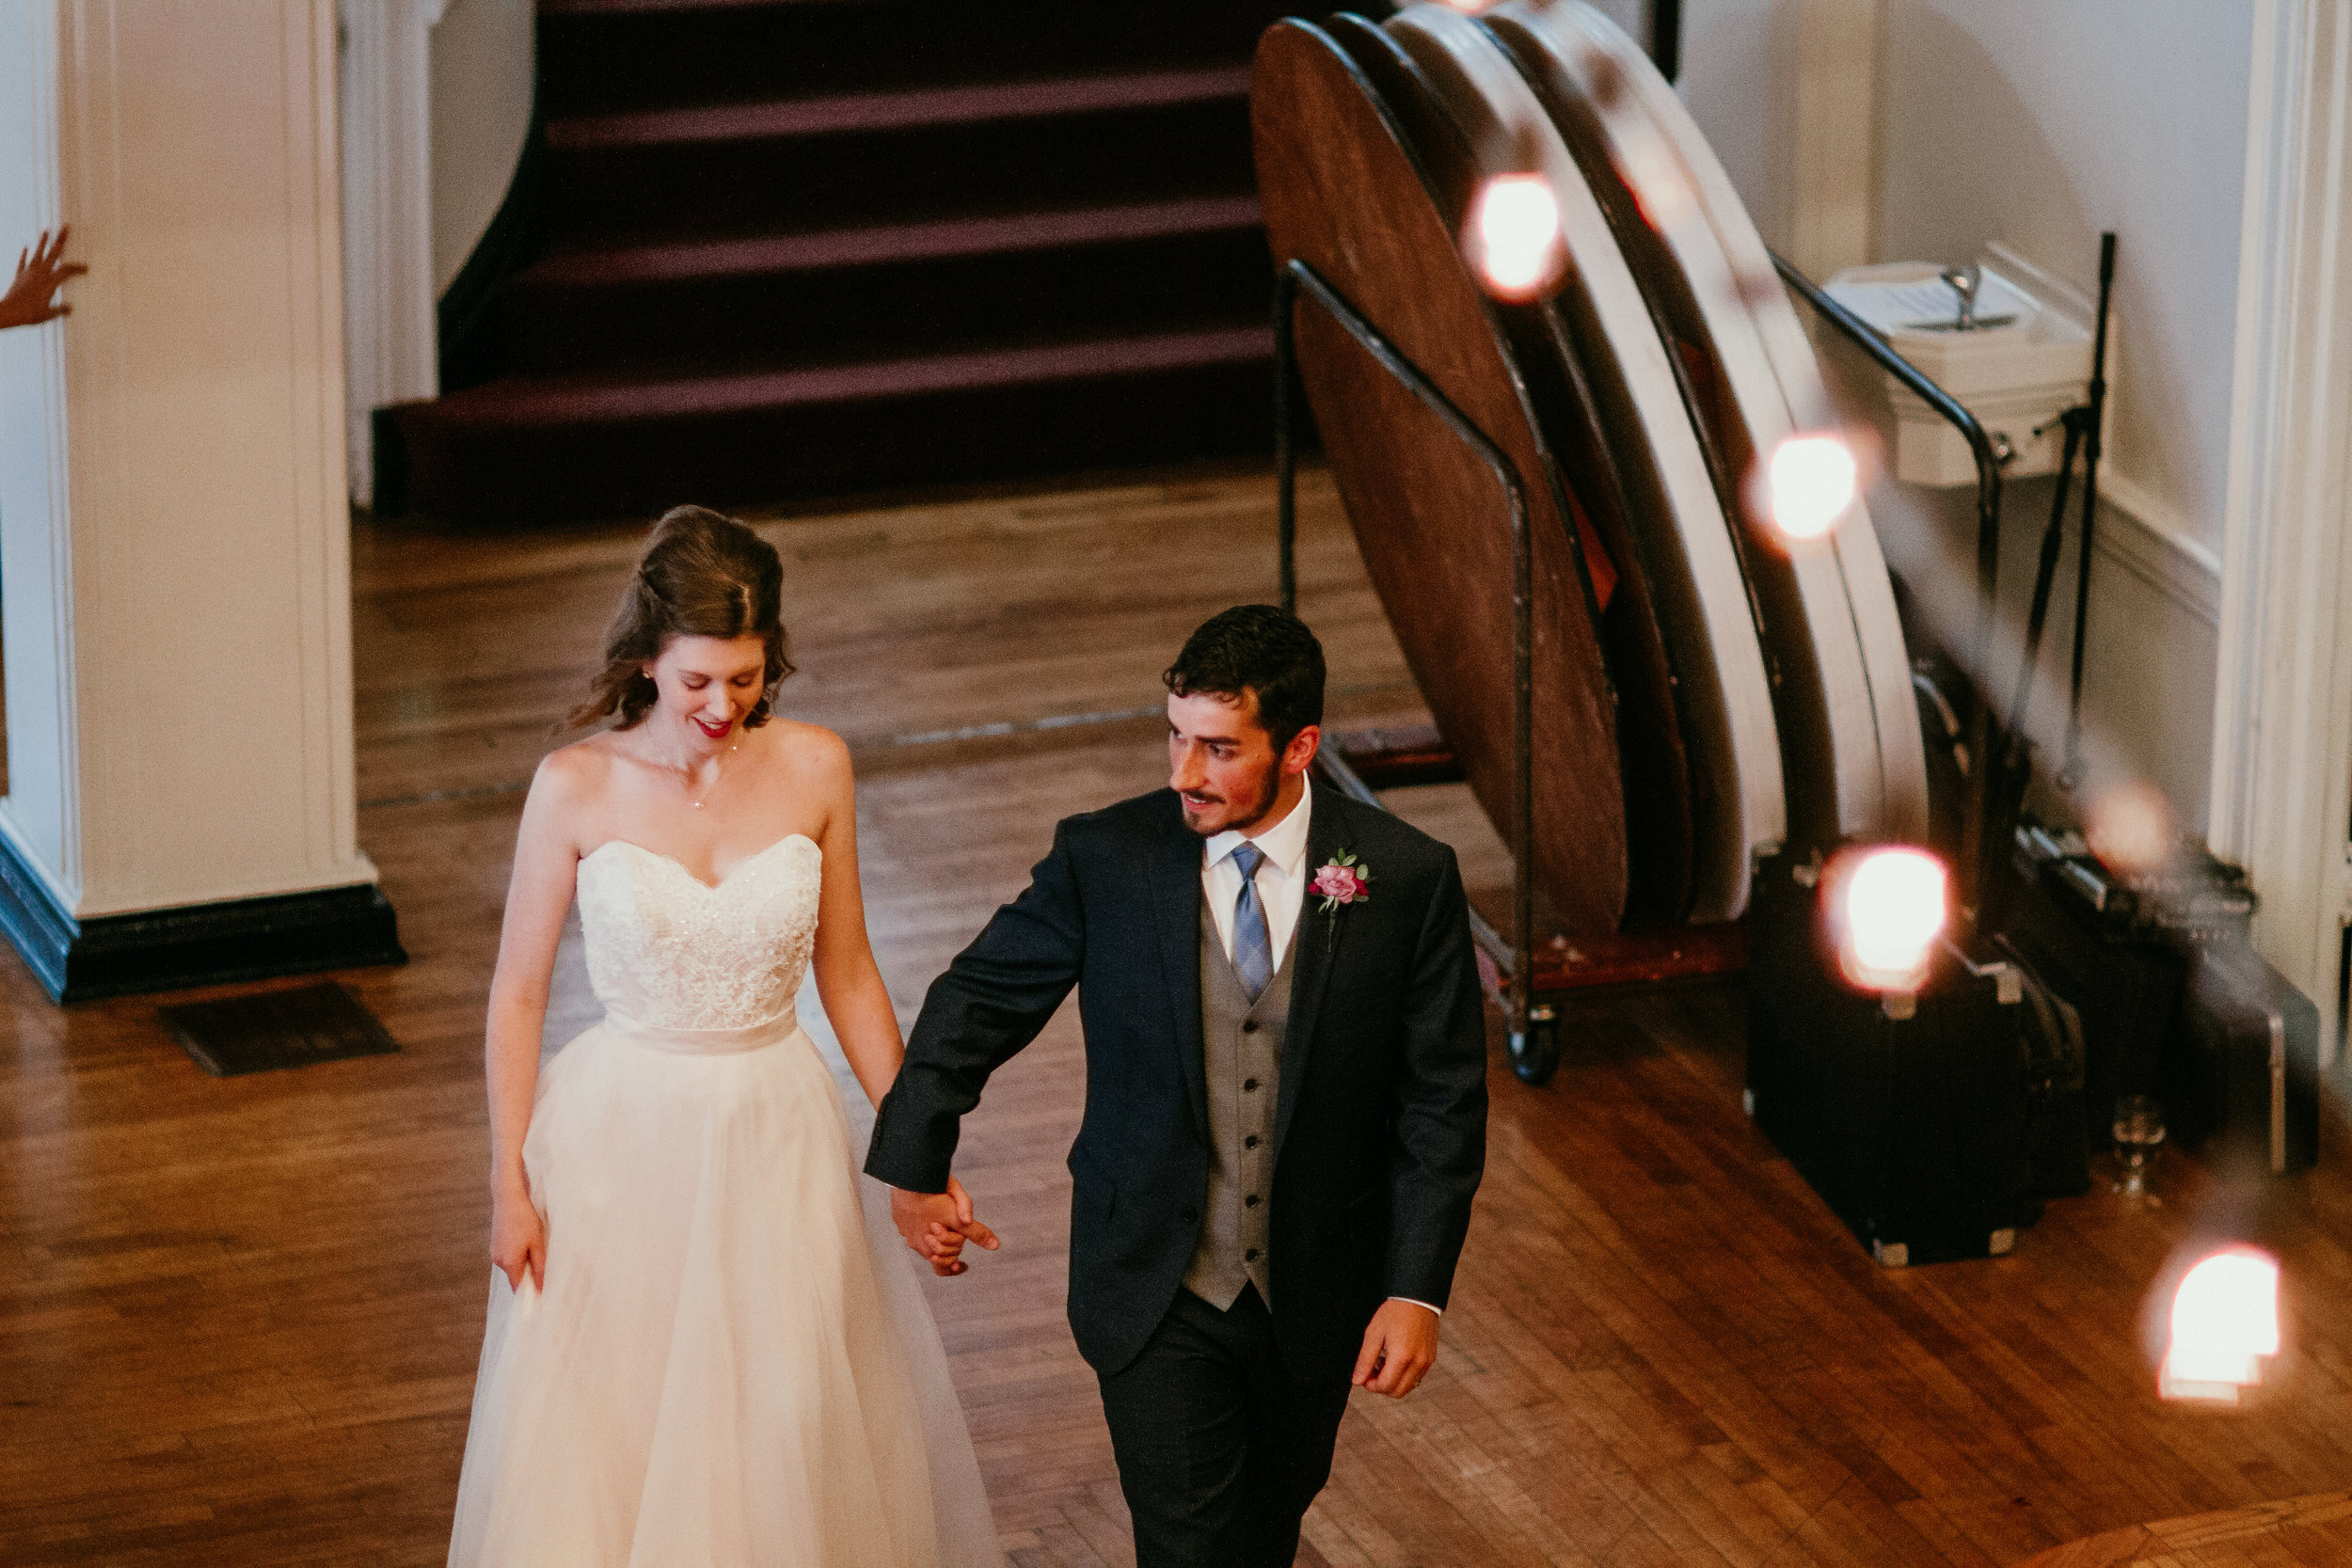 Introducing Husband and wife into the reception   Shelbie & Jospeh's Summer Love Story : Kansas City Wedding   Hanna Hill Photography